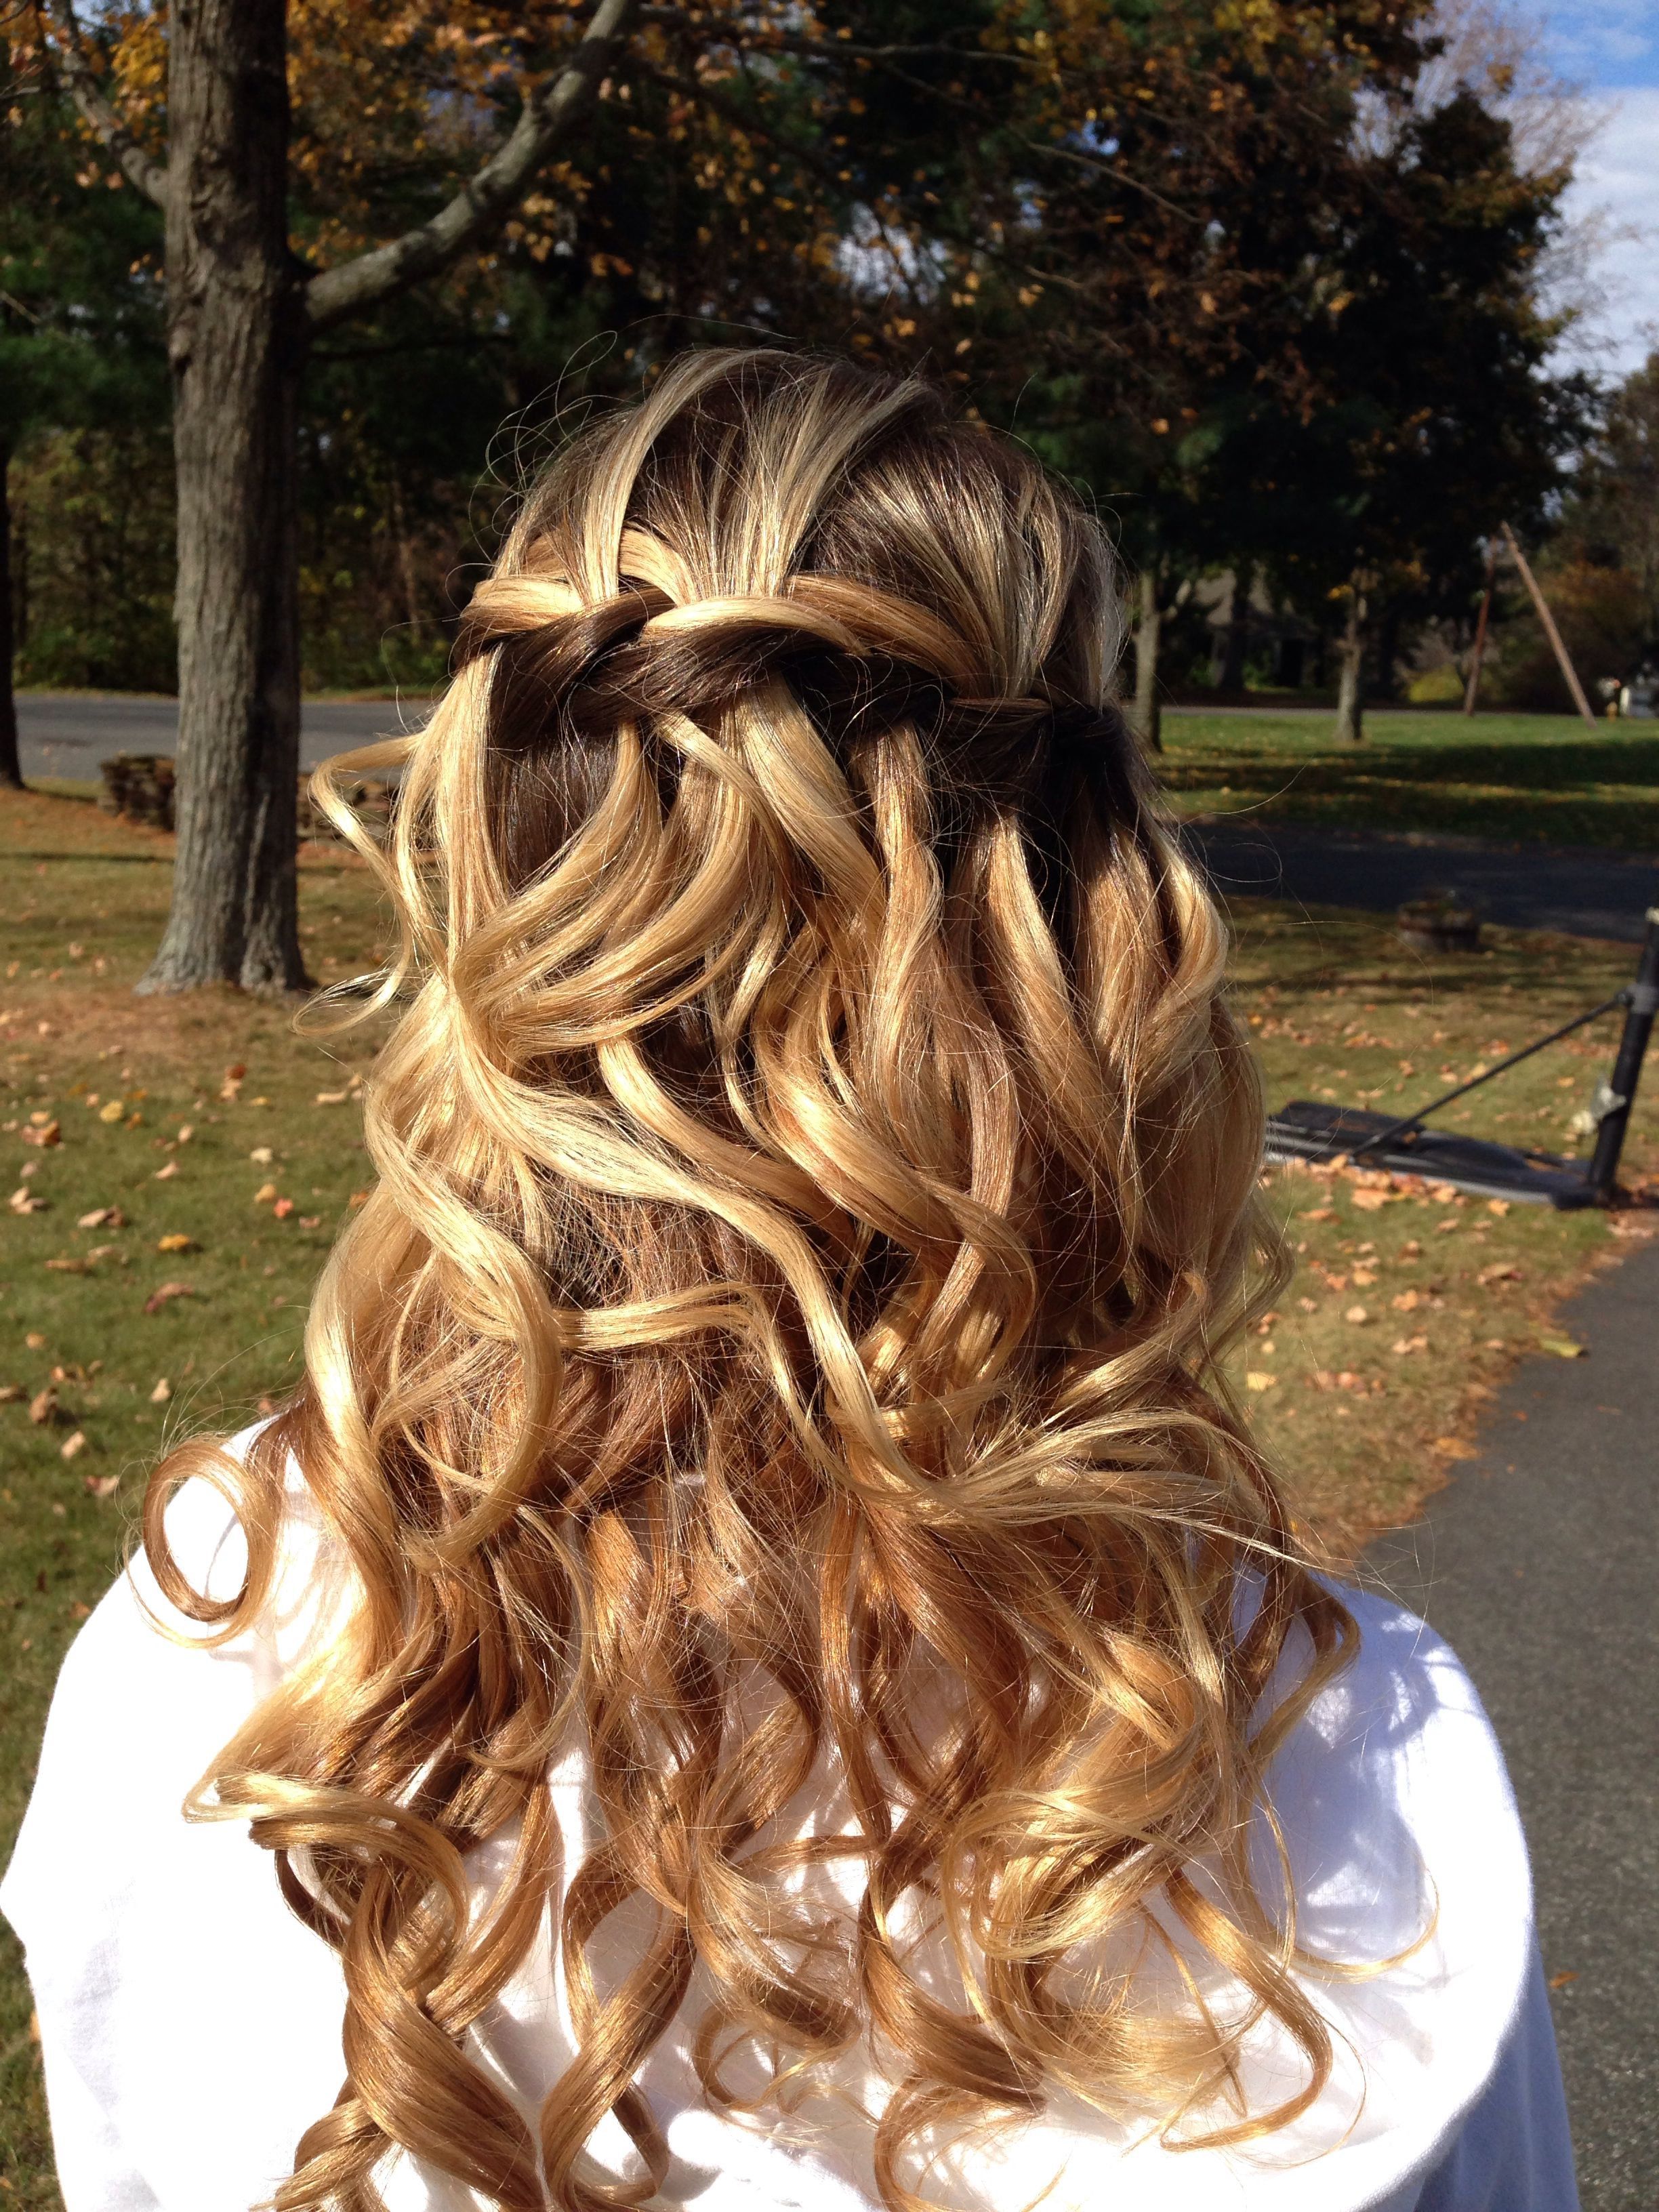 Pin By Sue Avdoulos On Hair Semi Formal Hairstyles Dance Hairstyles Braided Hairstyles For Wedding